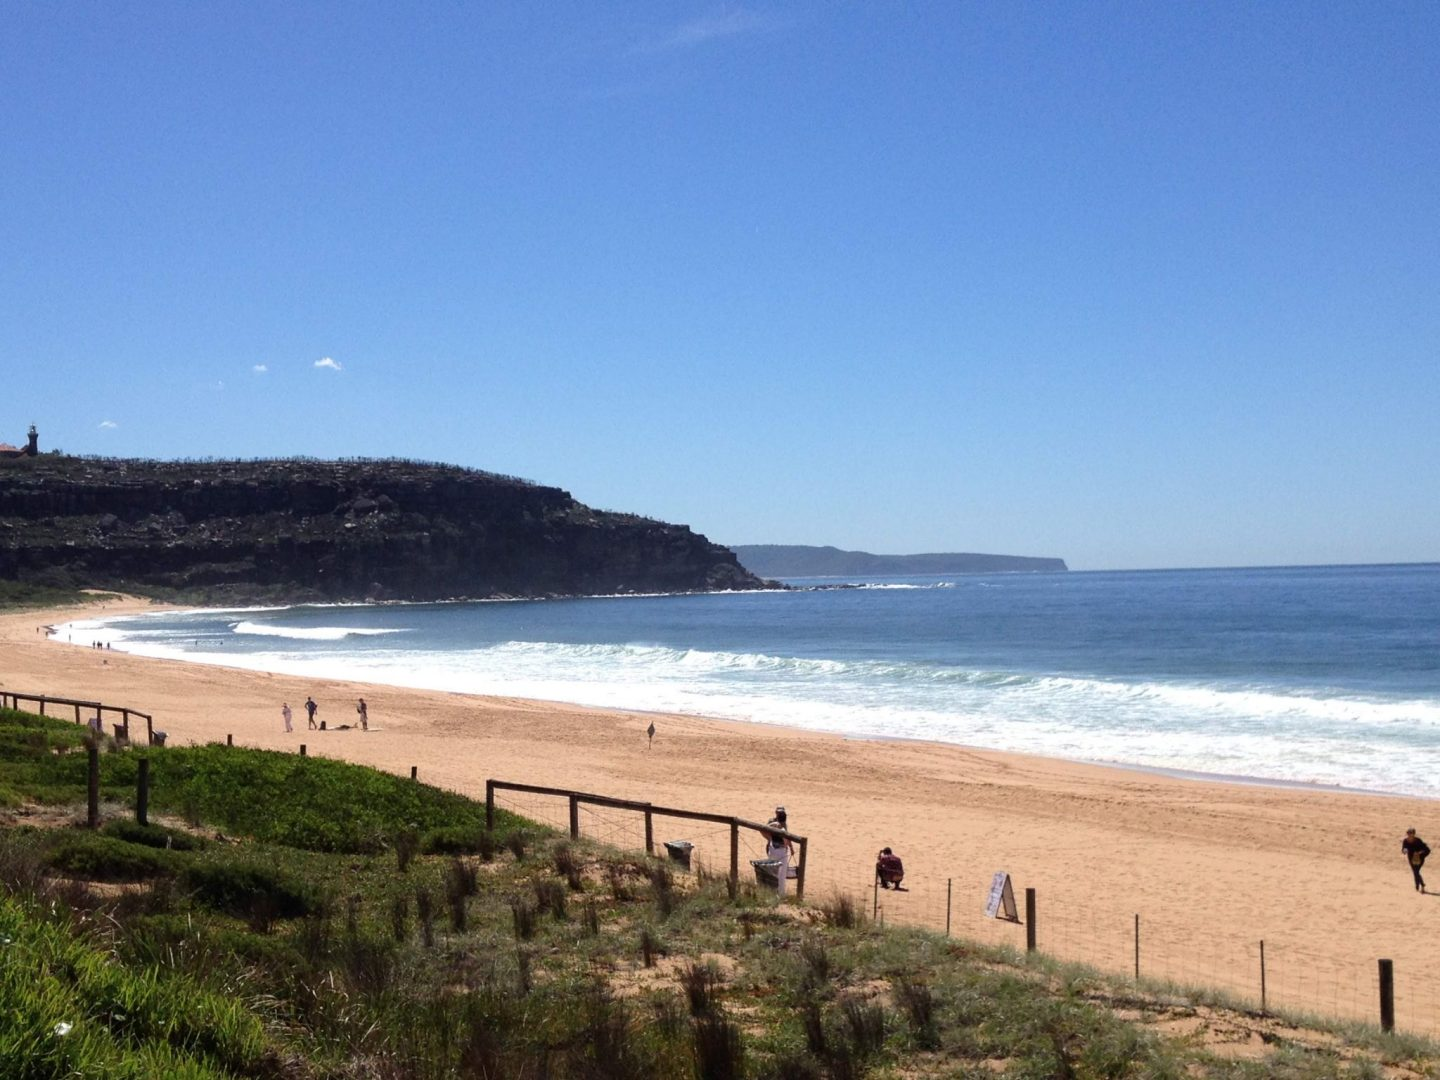 My favourite beaches: Palm Beach, Sydney and Barrenjoey